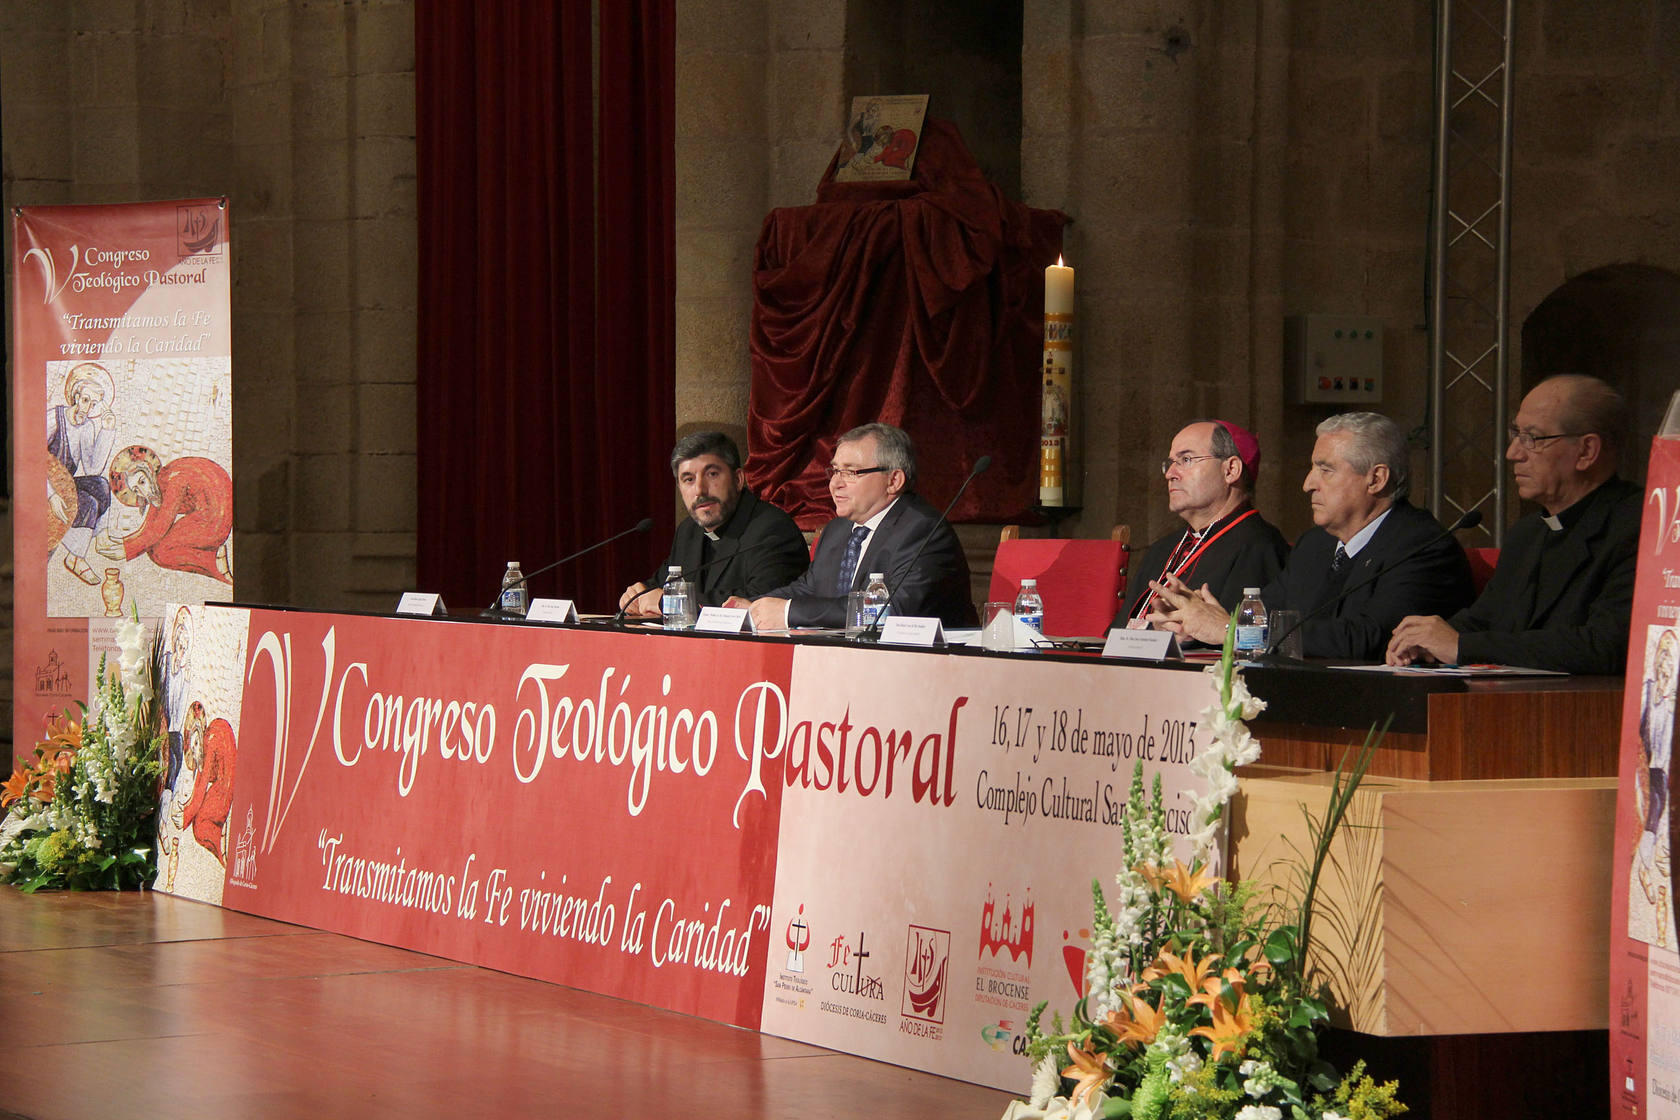 C&aacute;ceres acoge el V Congreso Teol&oacute;gico Pastoral